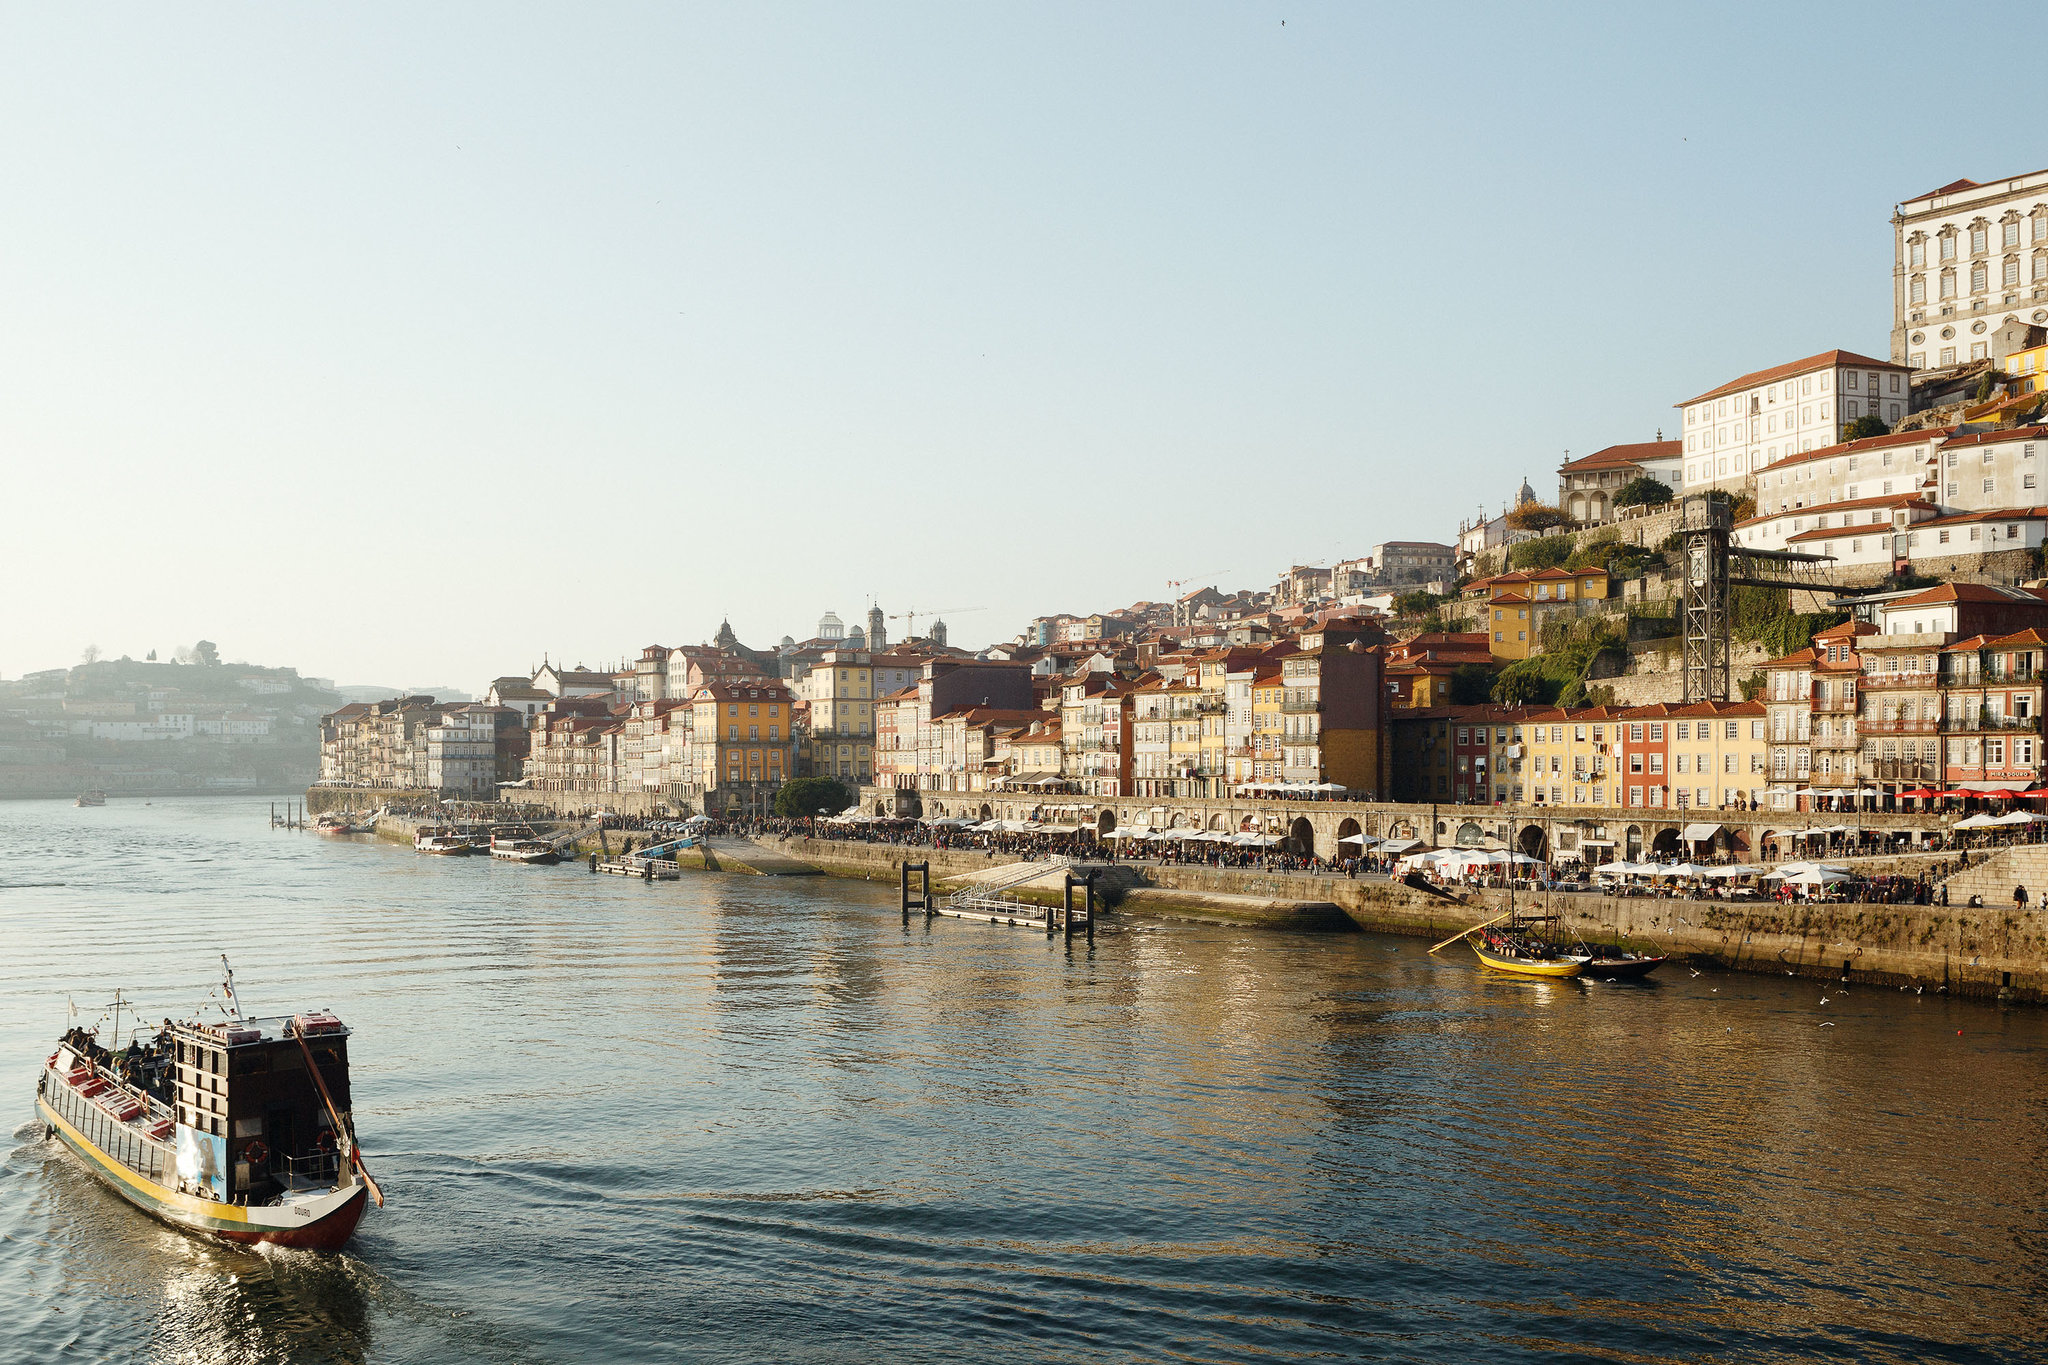 Porto's historic district of Ribeira is known for its riverside restaurants and bars